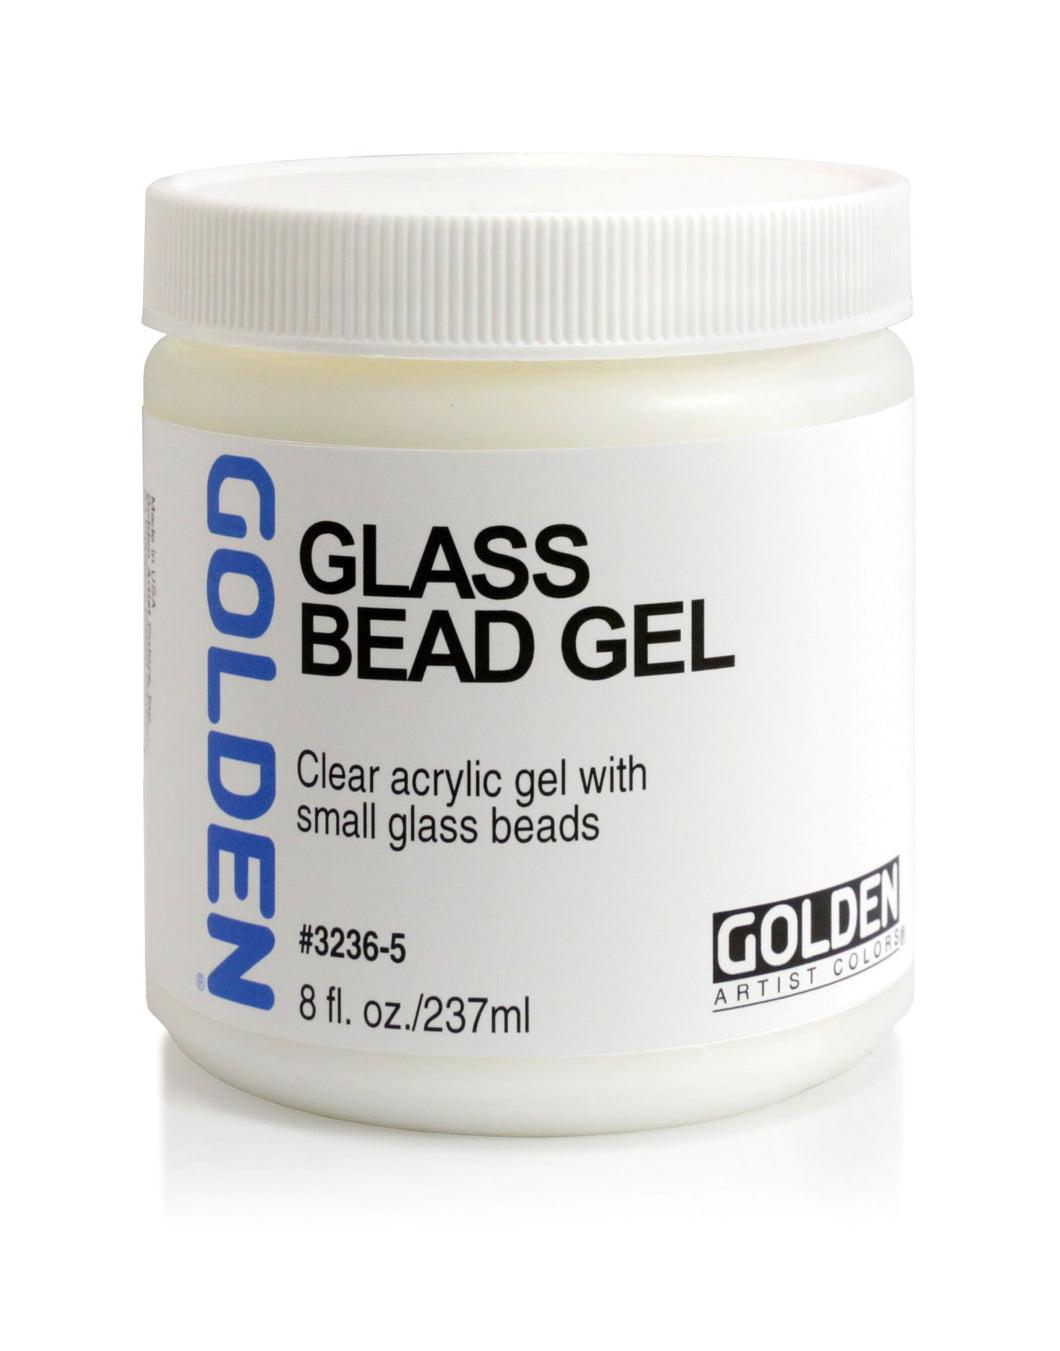 Golden Glass Bead Gel